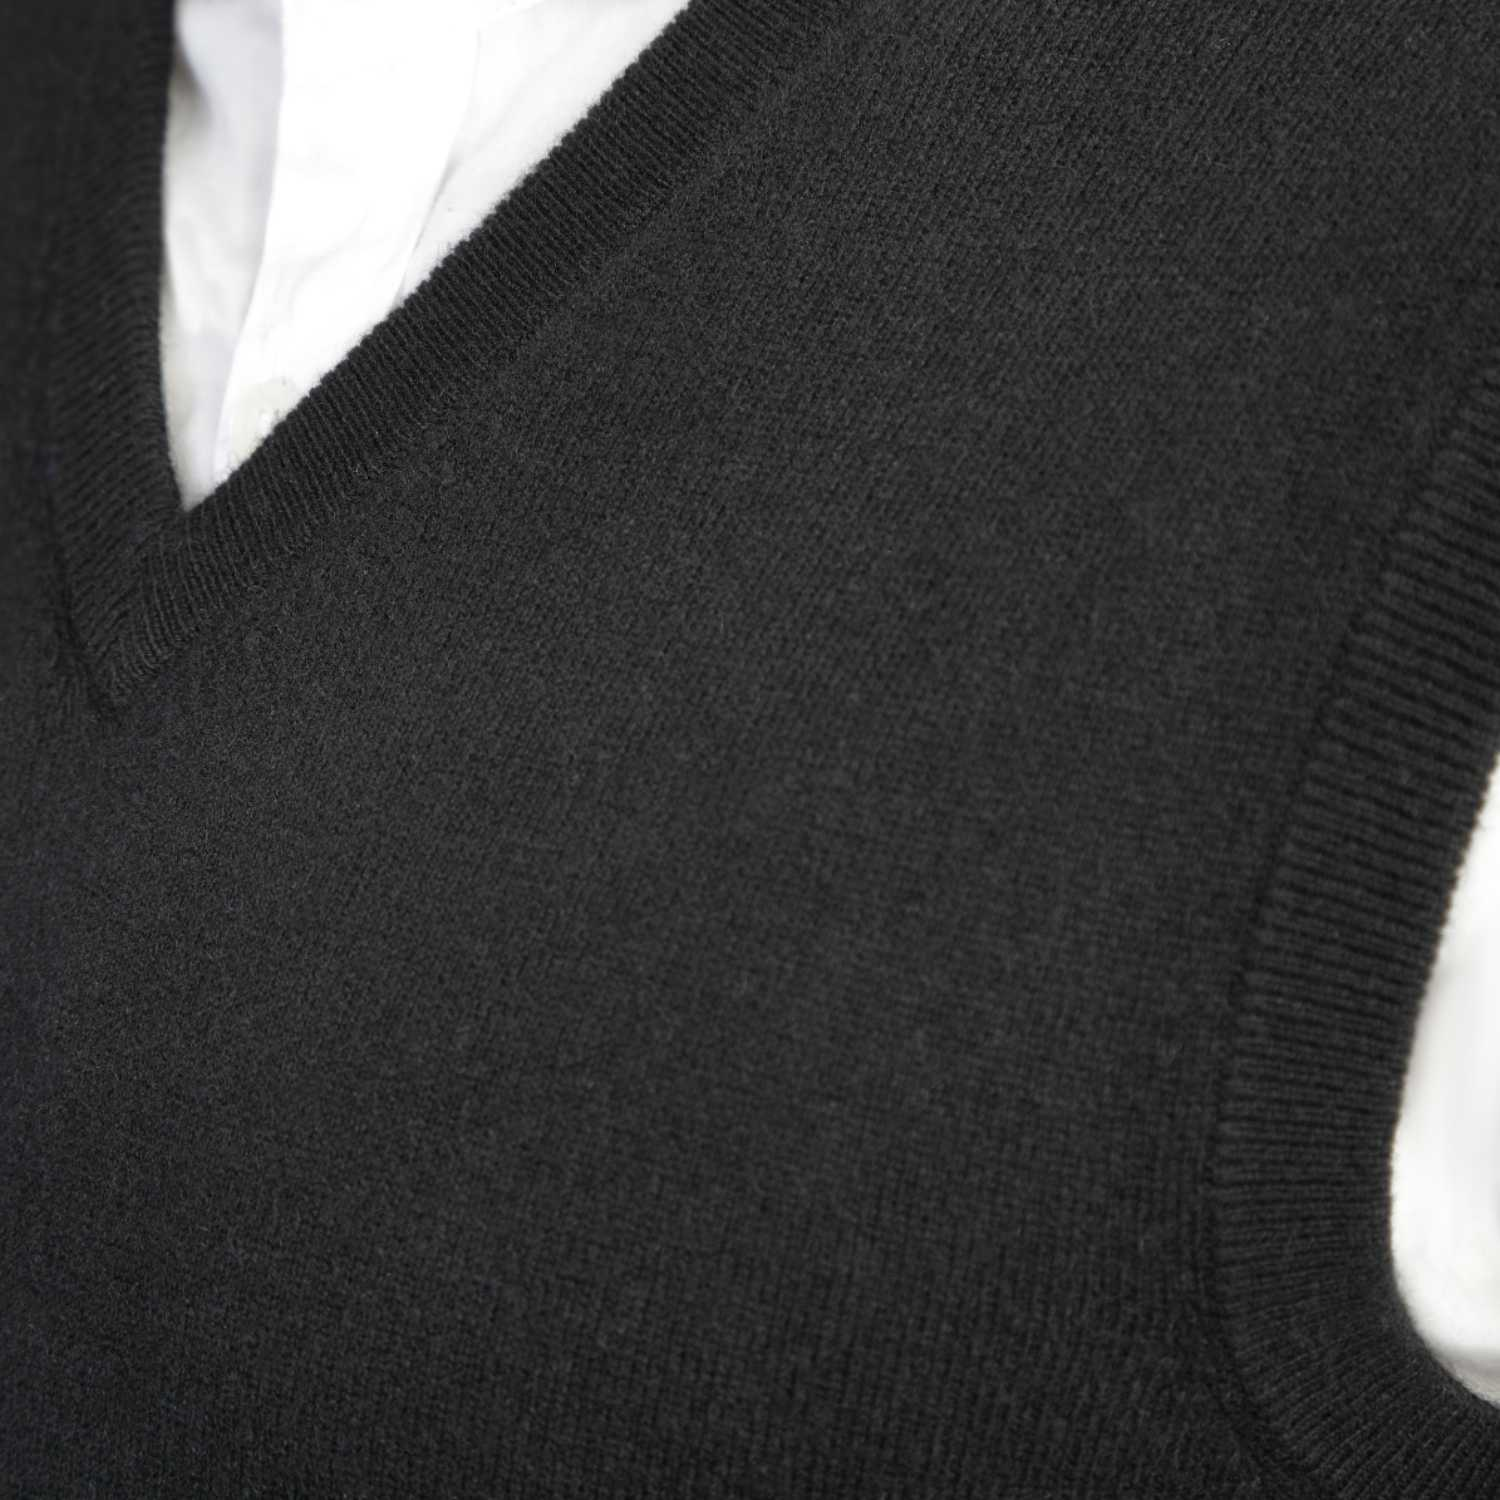 Mens Cashmere Sleeveless Sweater Vest - The Cashmere Choice - Online